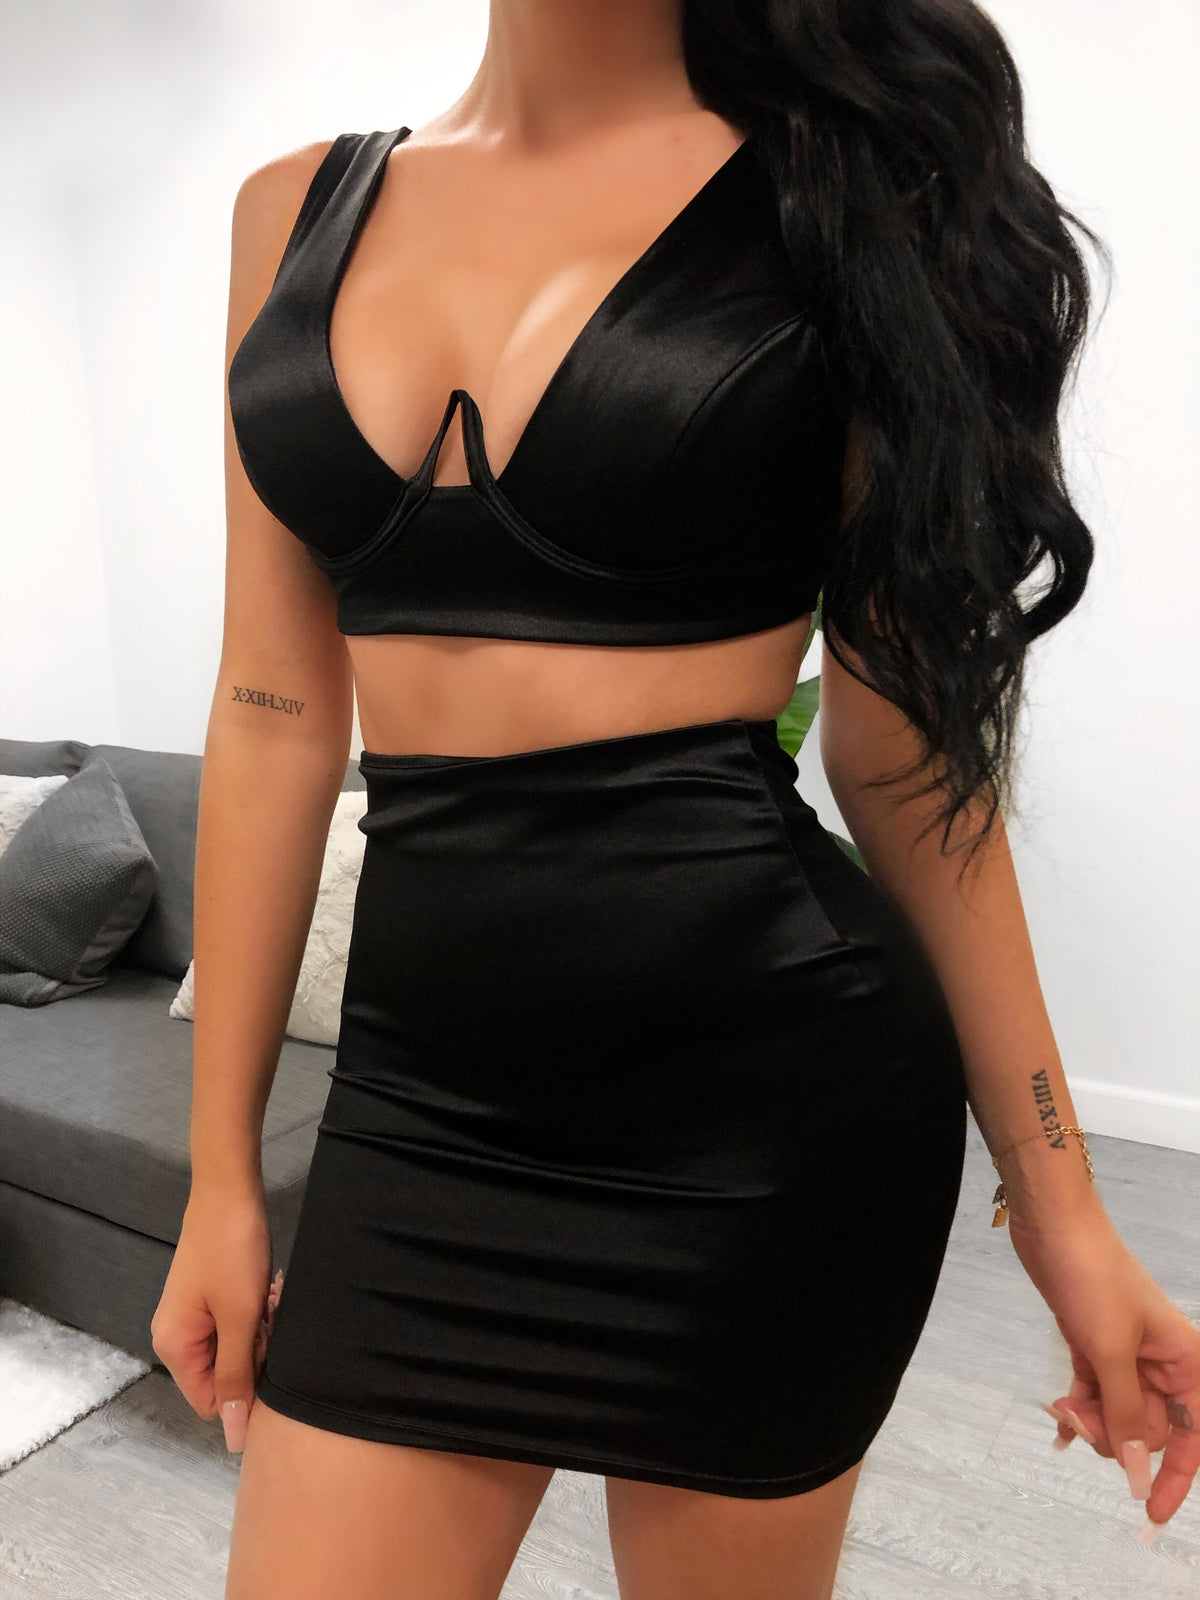 black satin 2 piece, top has u shape neckline showing half cleavage crop top, sleeveless, strap are 4 fingers wide, bottoms is a black high was it skirt that ends mid thigh